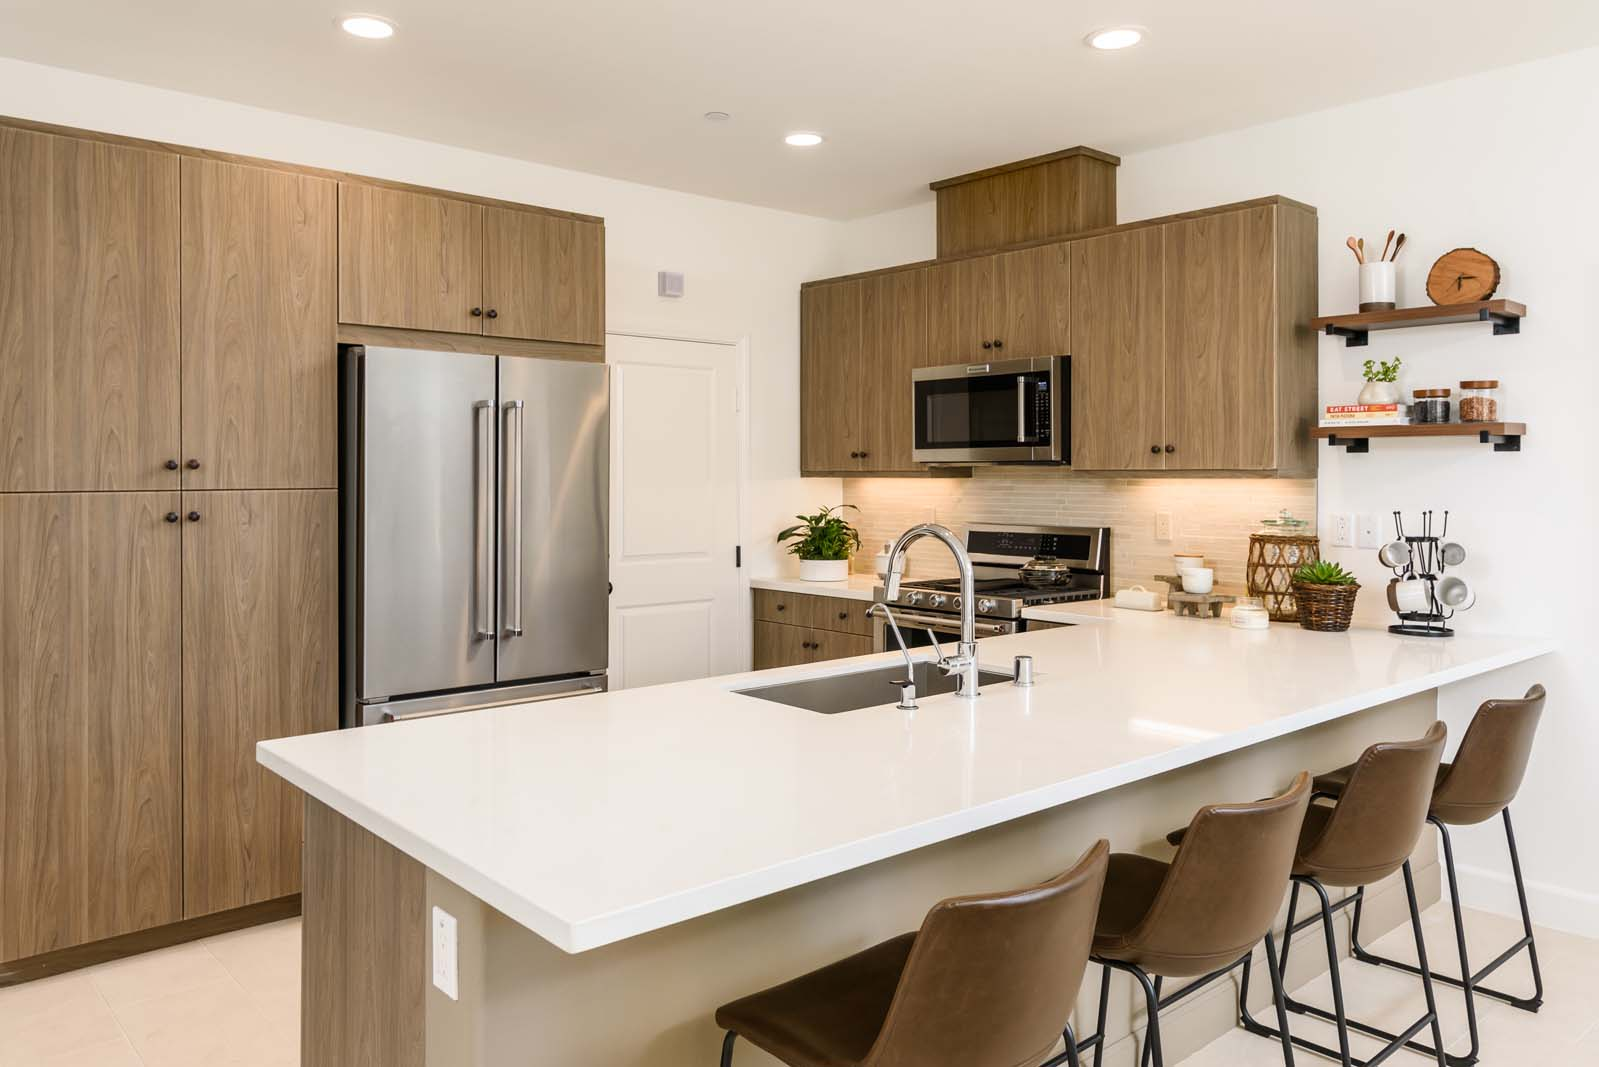 Modern San Diego Townhome Kitchen for Sale